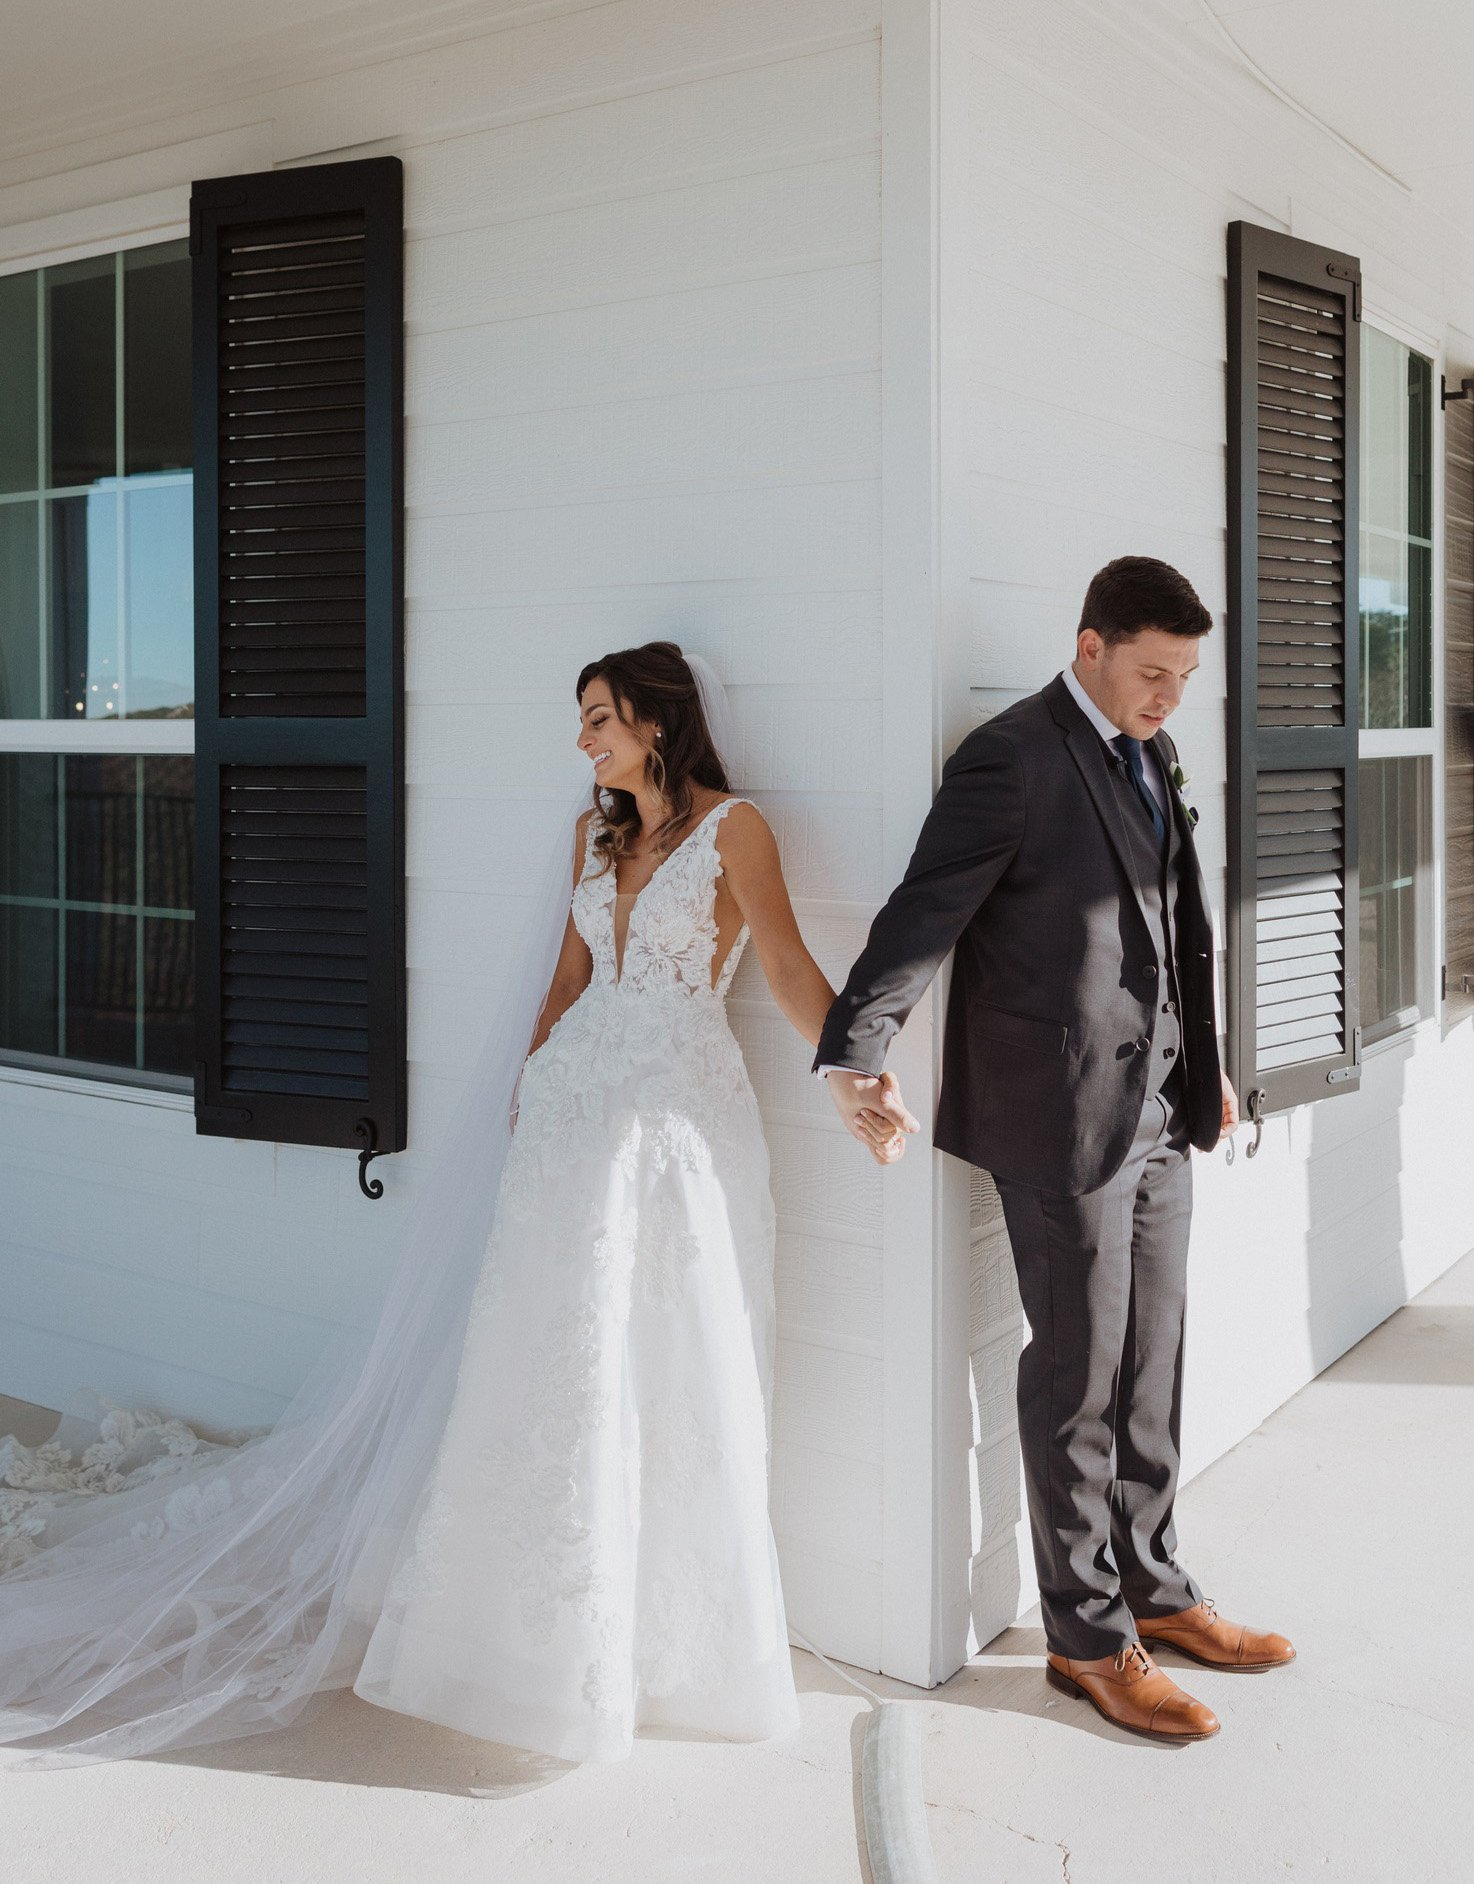 SHAYLA & WYATT - sanantonioweddings.com - BridalBuzz